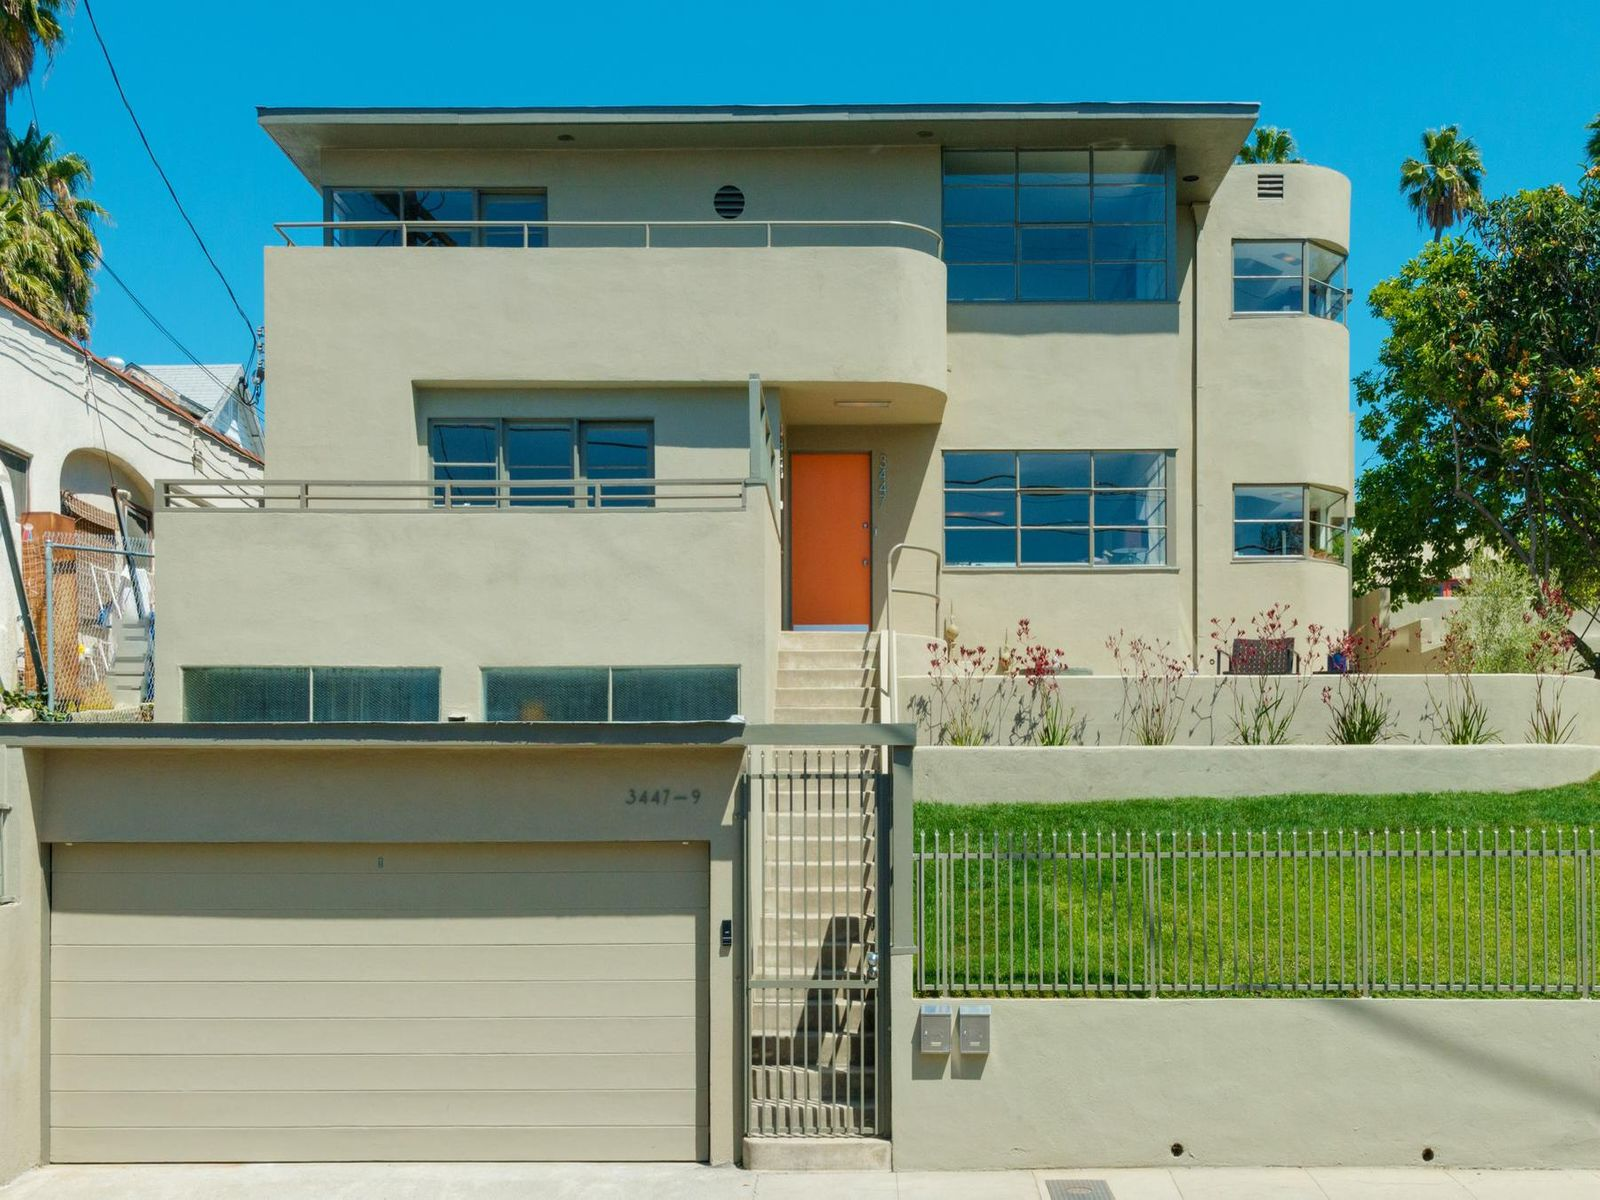 3447 Descanso Drive, Los Angeles CA Multi-Family - Los Angeles Real Estate